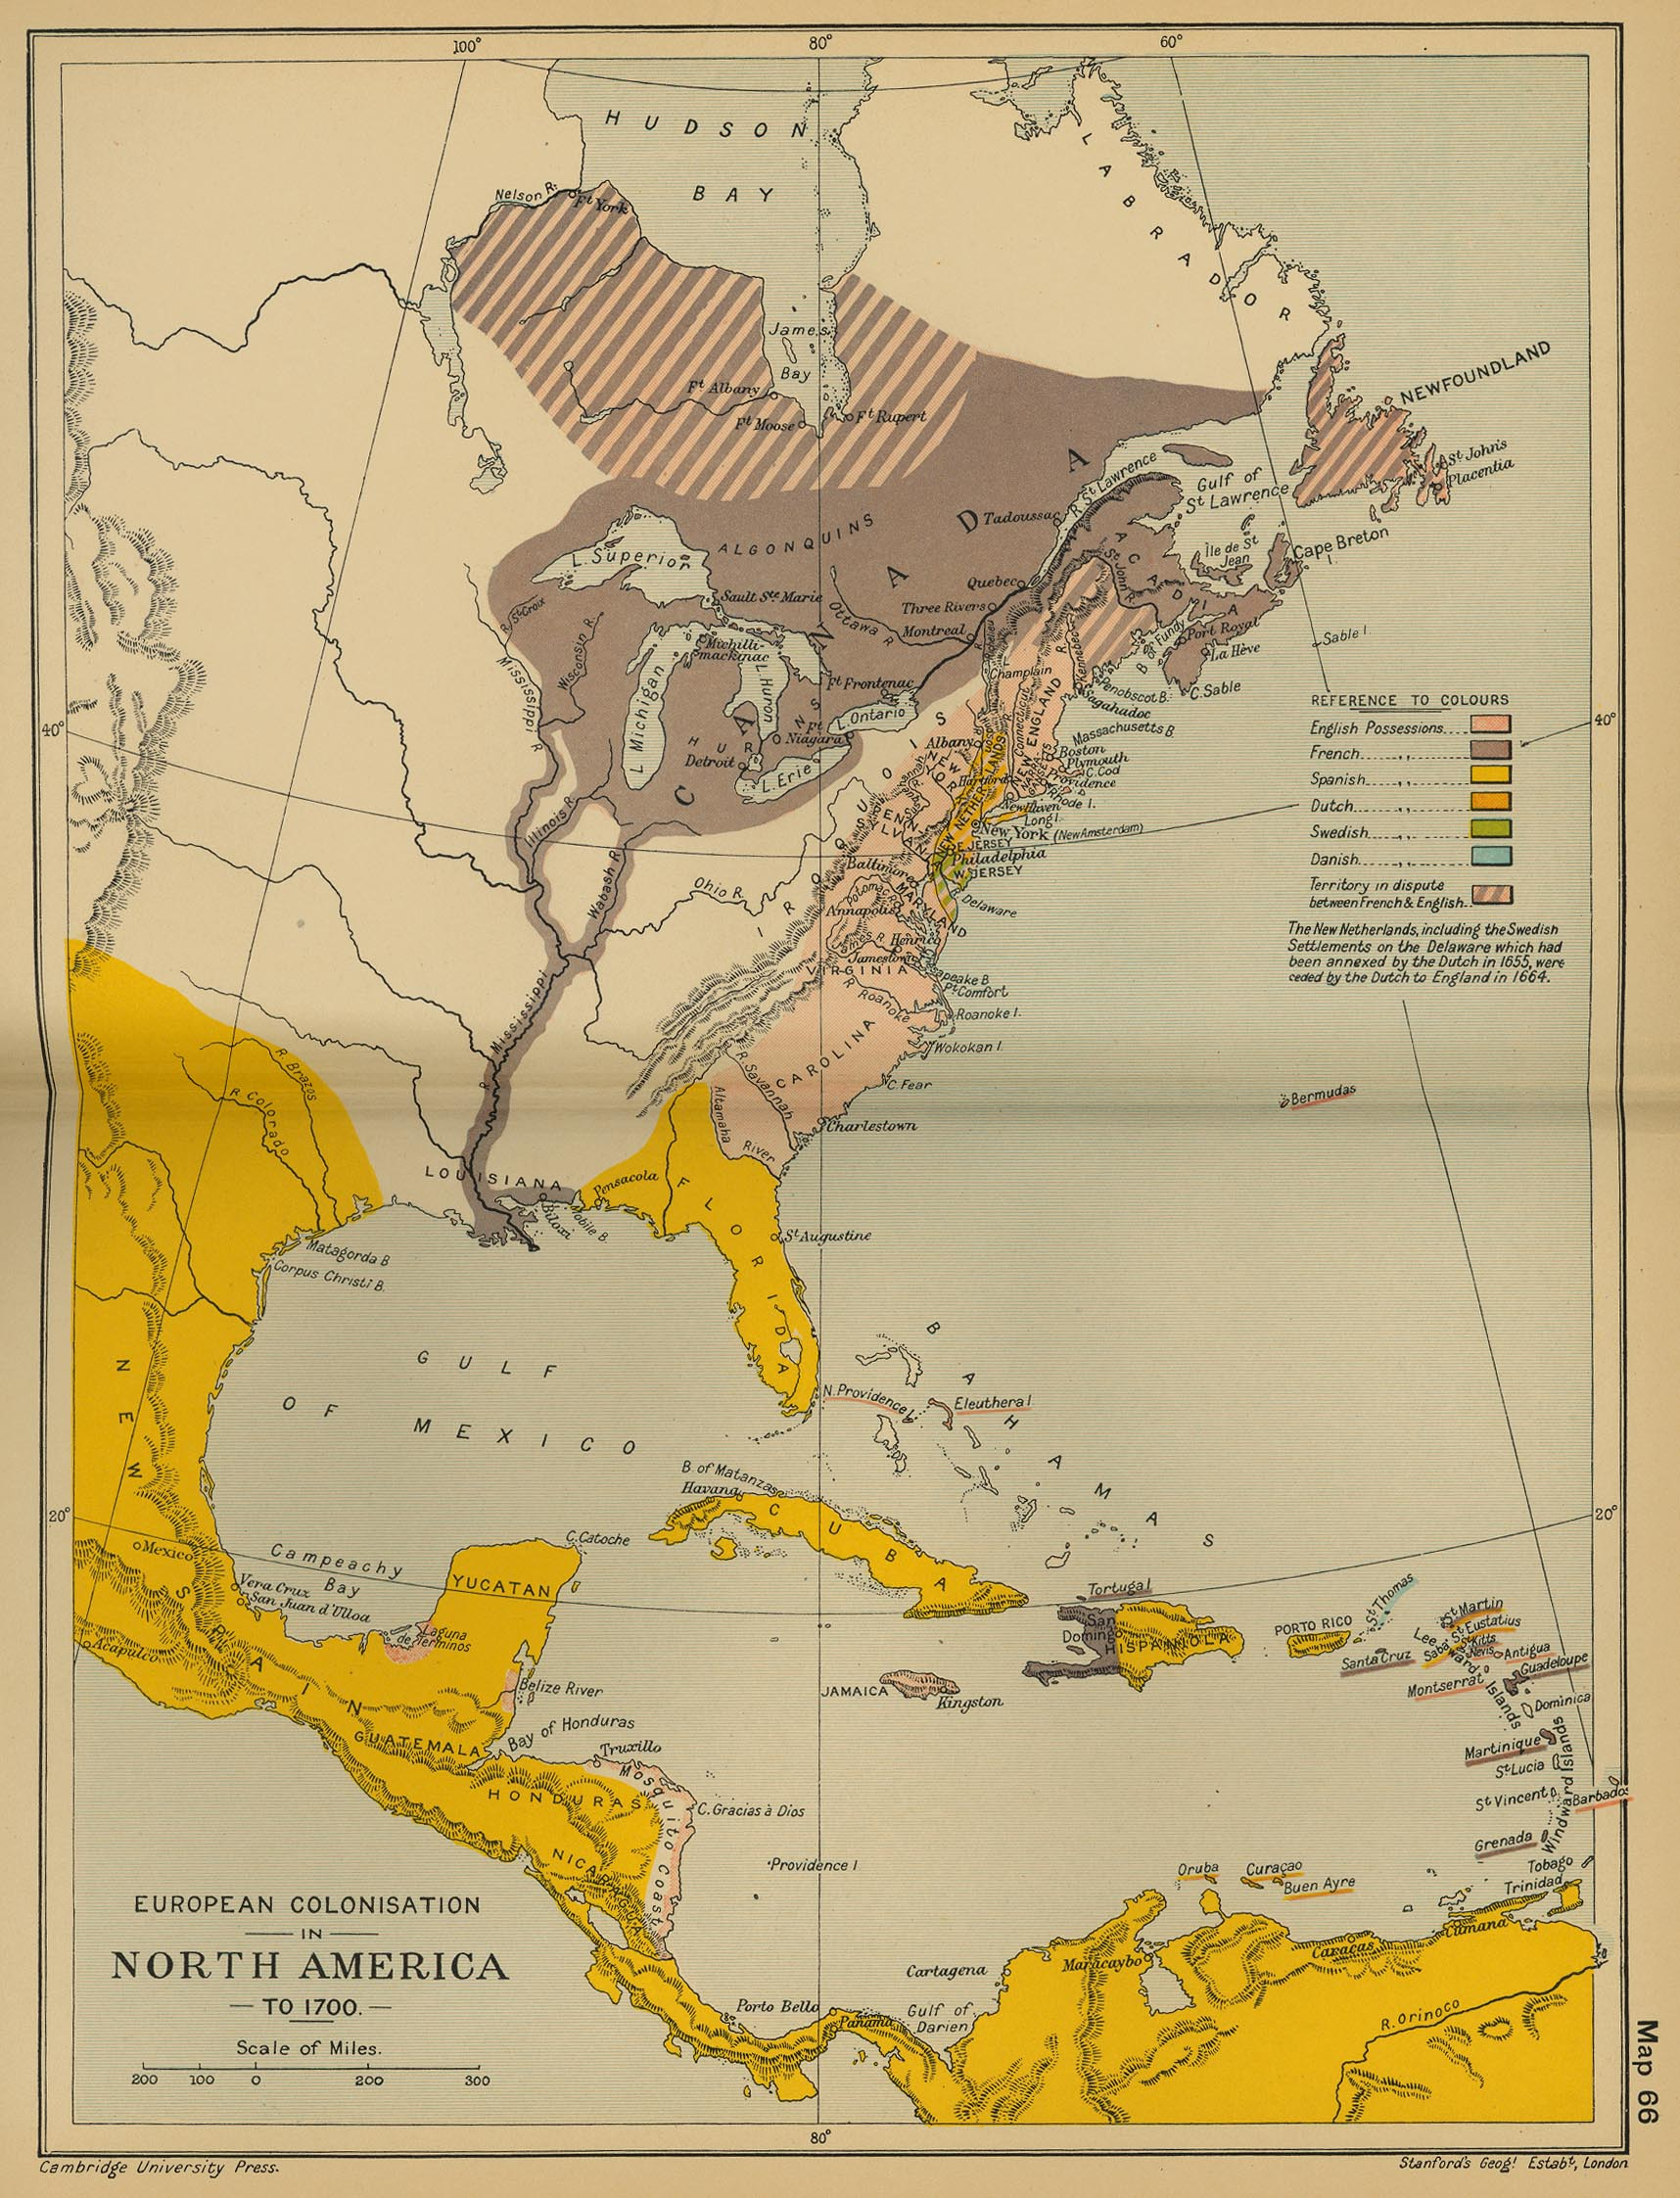 Map of the European Colonization in North America to 1700